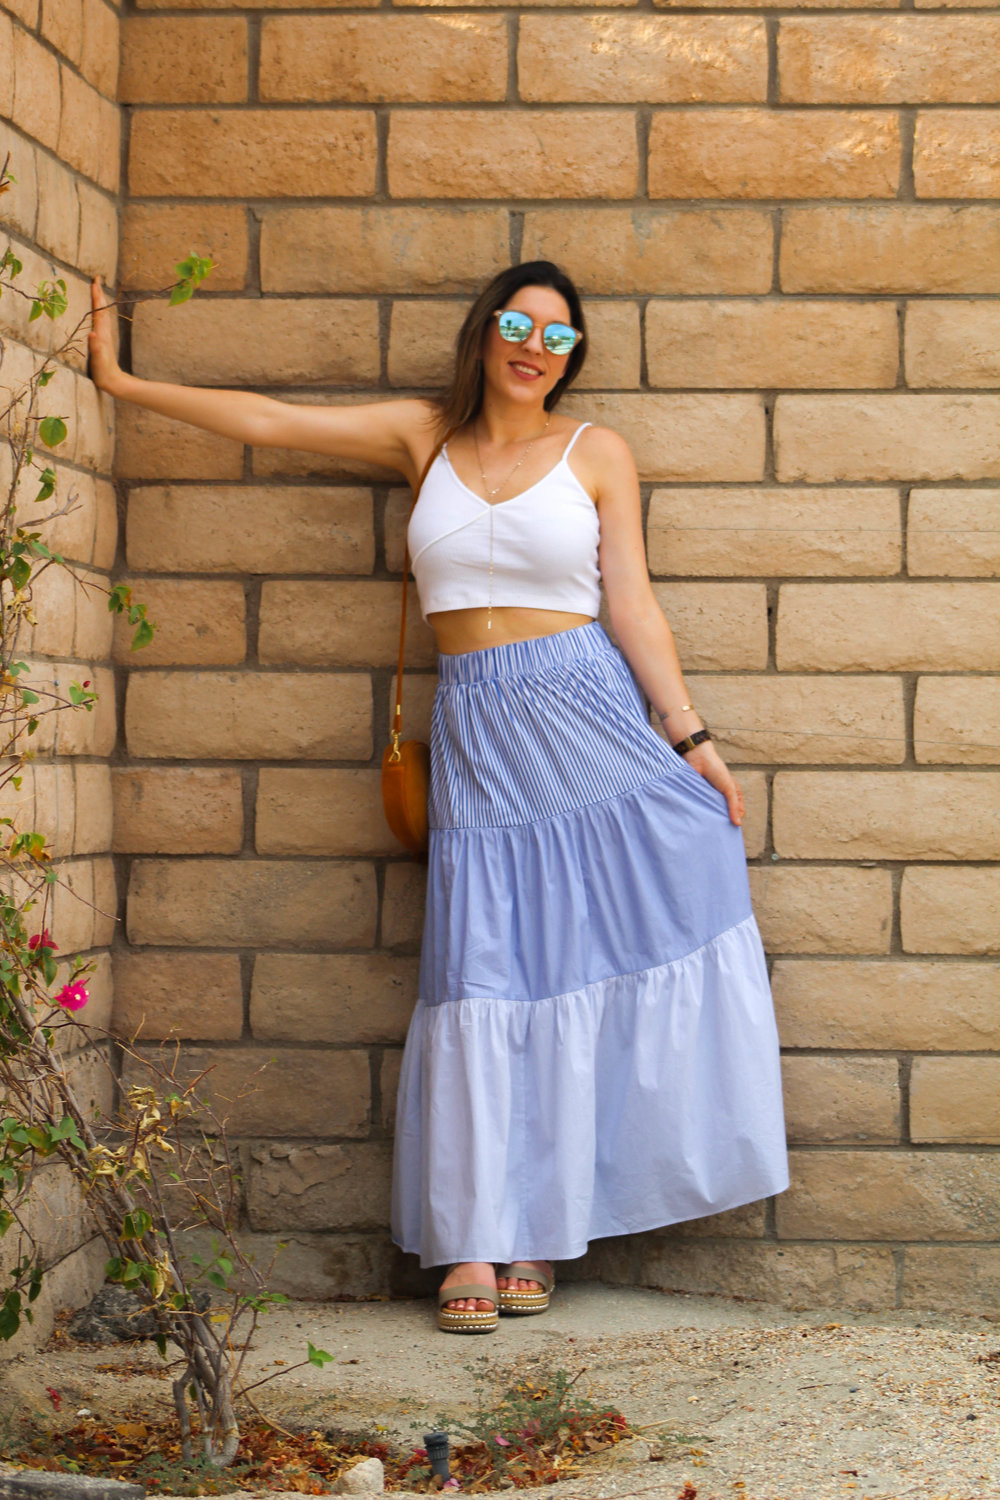 Skirt: Zara,   similar here   // Top:   Topshop   // Shoes:   Seven Dials   // Purse:   similar here   // Sunnies:   Le Specs